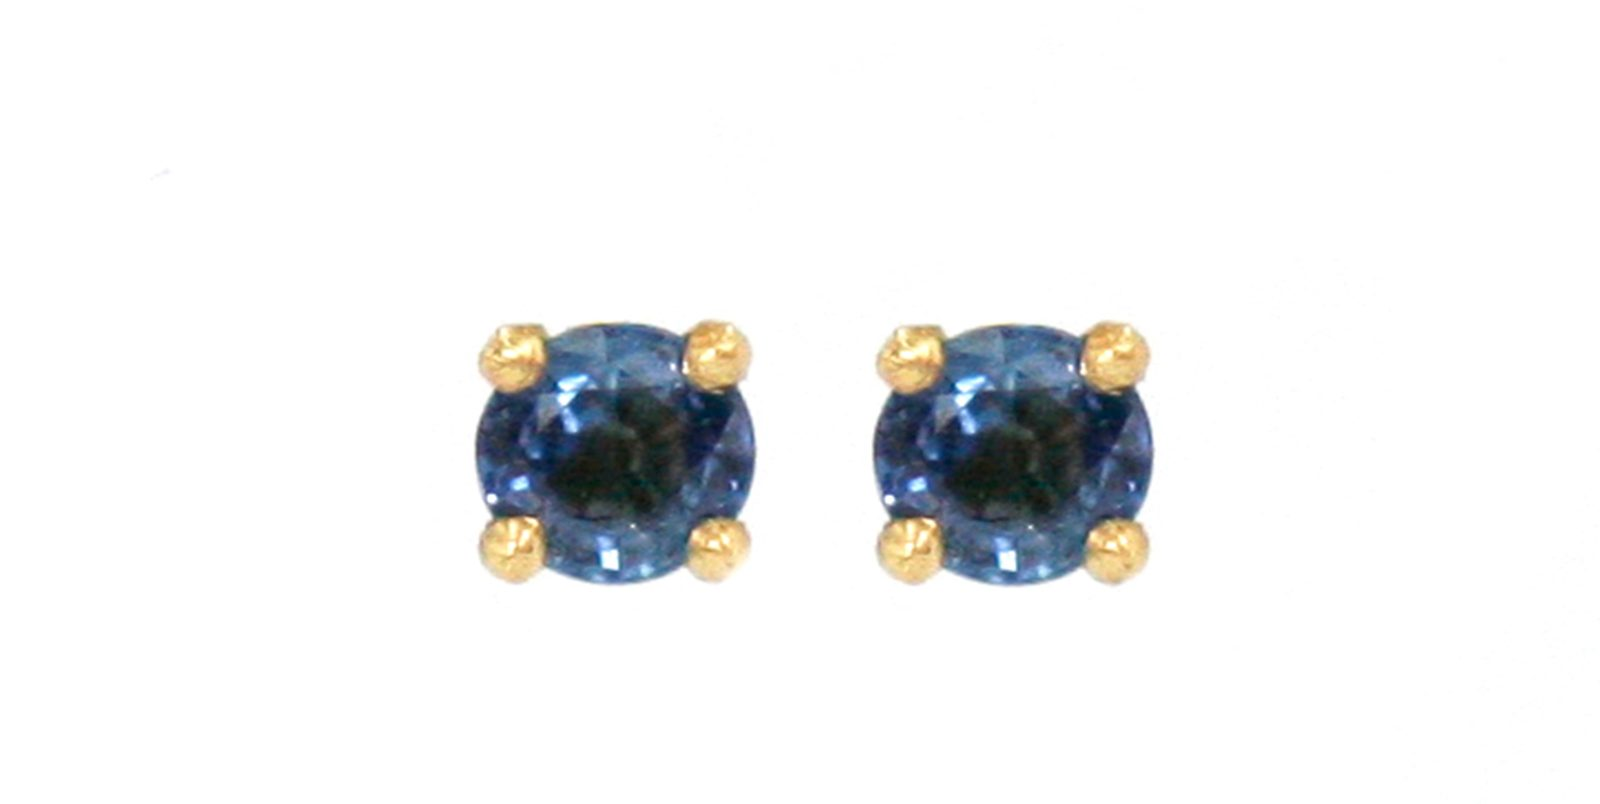 18ct Yellow Gold Blue Sapphire 4 Claw Stud Earrings